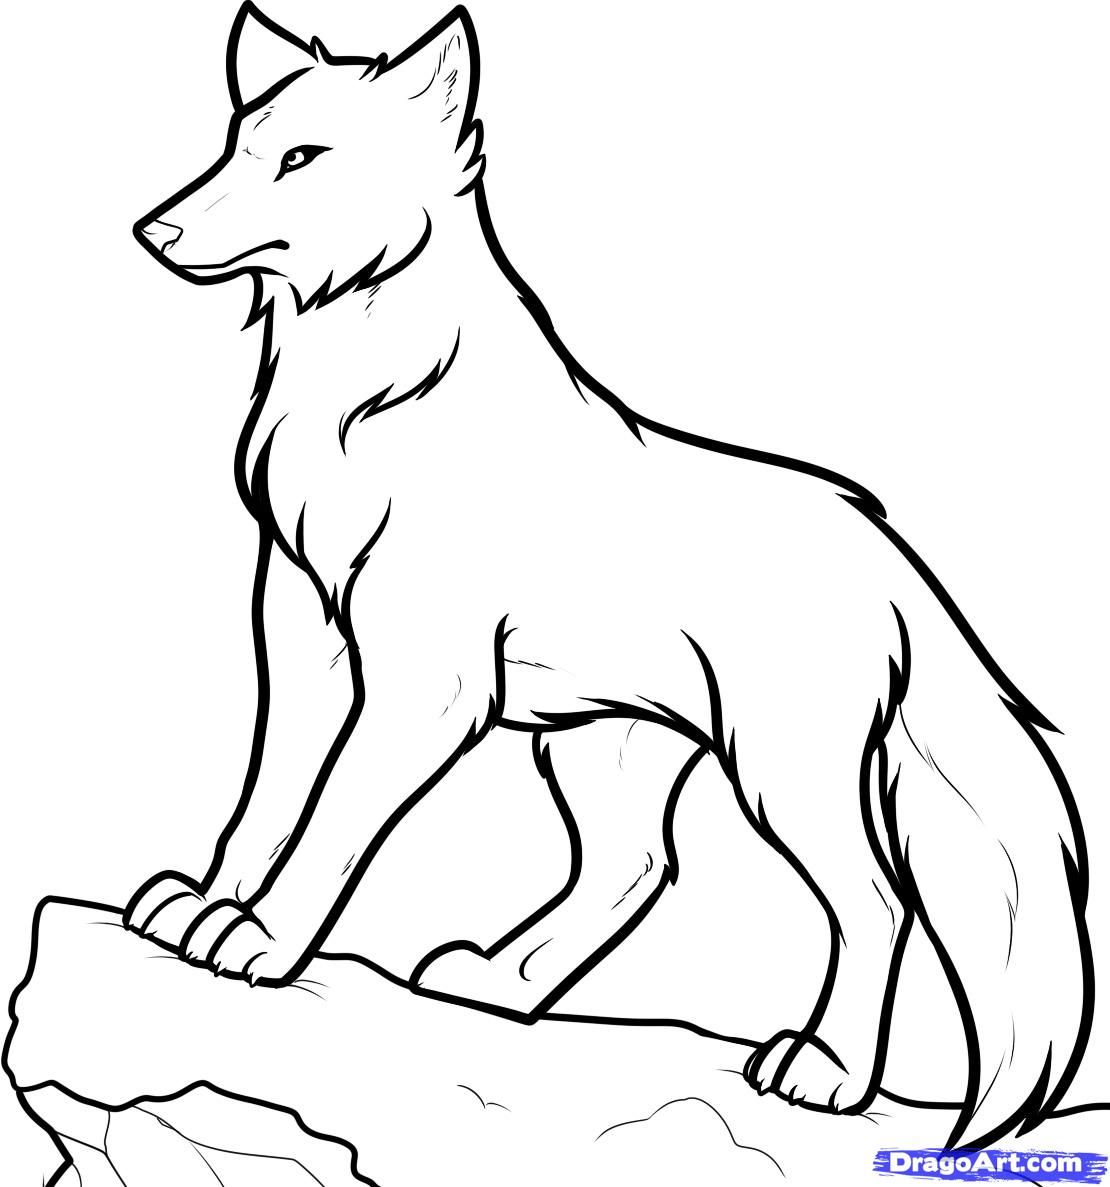 How To Draw Anime Wolves Anime Wolves Step By Step Anime Animals Anime Draw Japanese Anime Draw Man Cartoon Wolf Drawing Anime Wolf Easy Cartoon Drawings